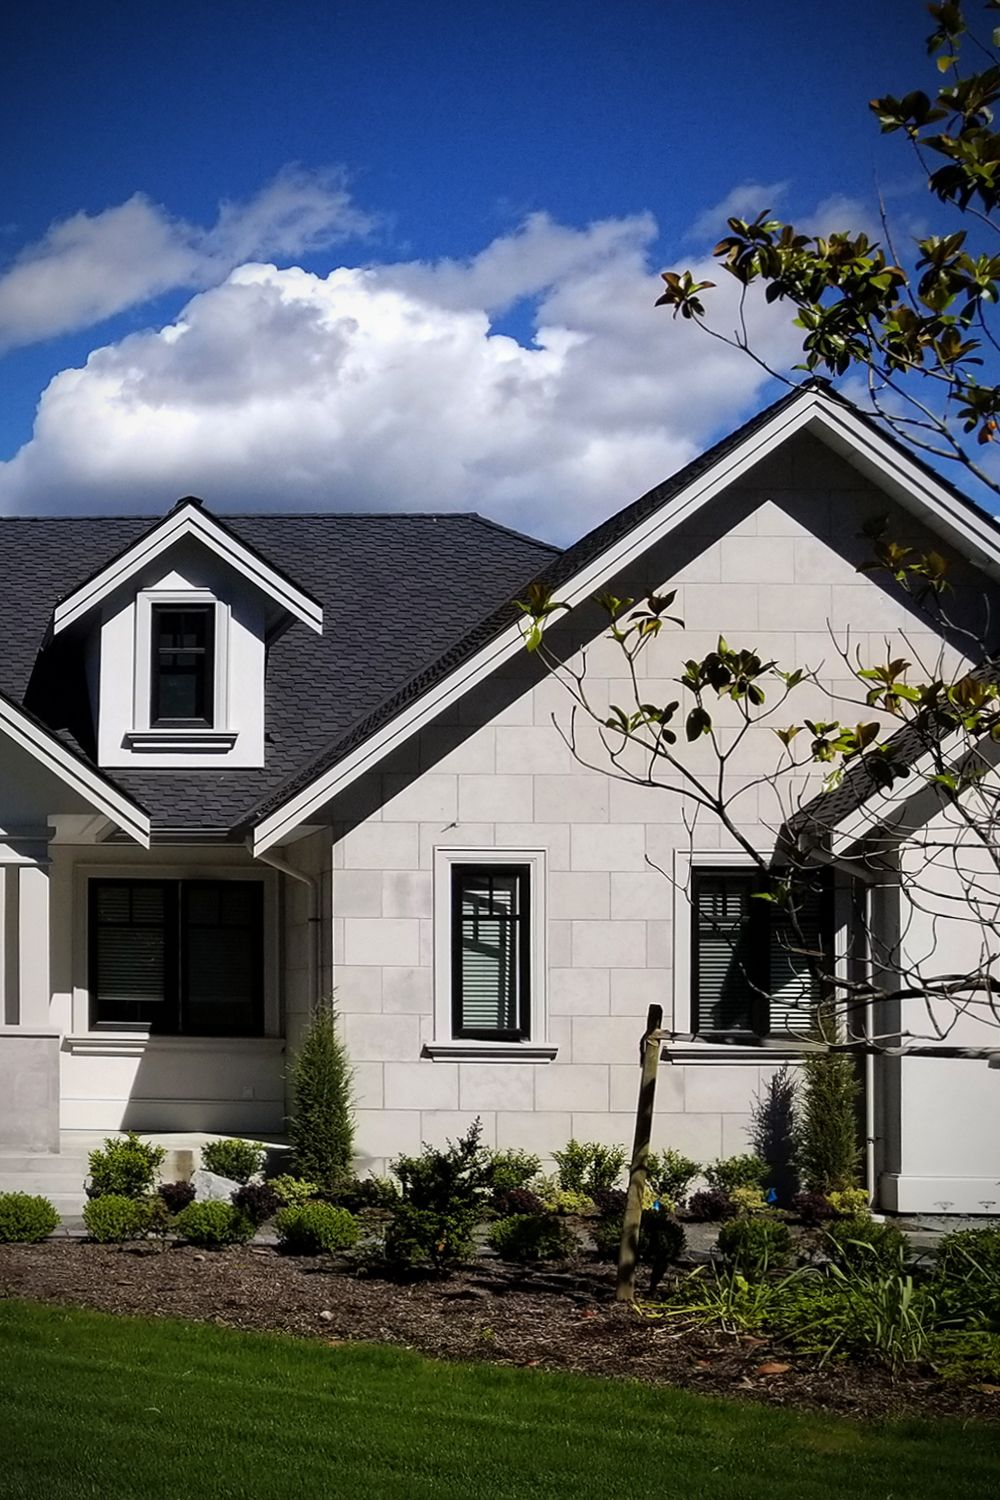 Pin On Design Ideas Natural Stone Cut Architecture Stone Panels